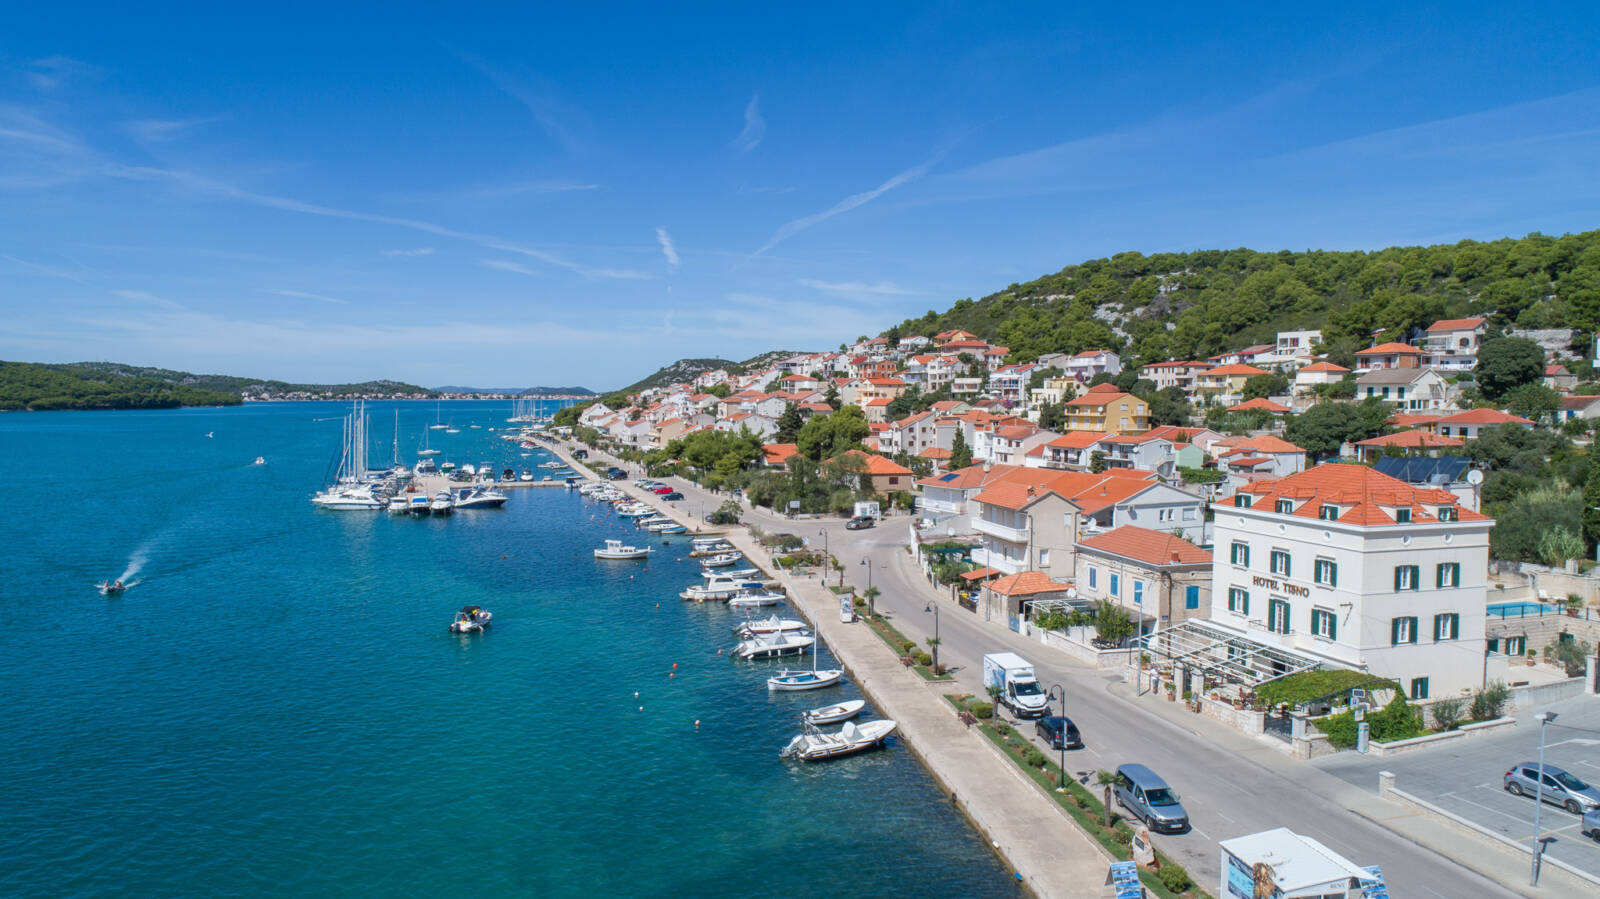 Hotel Tisno Aerial View